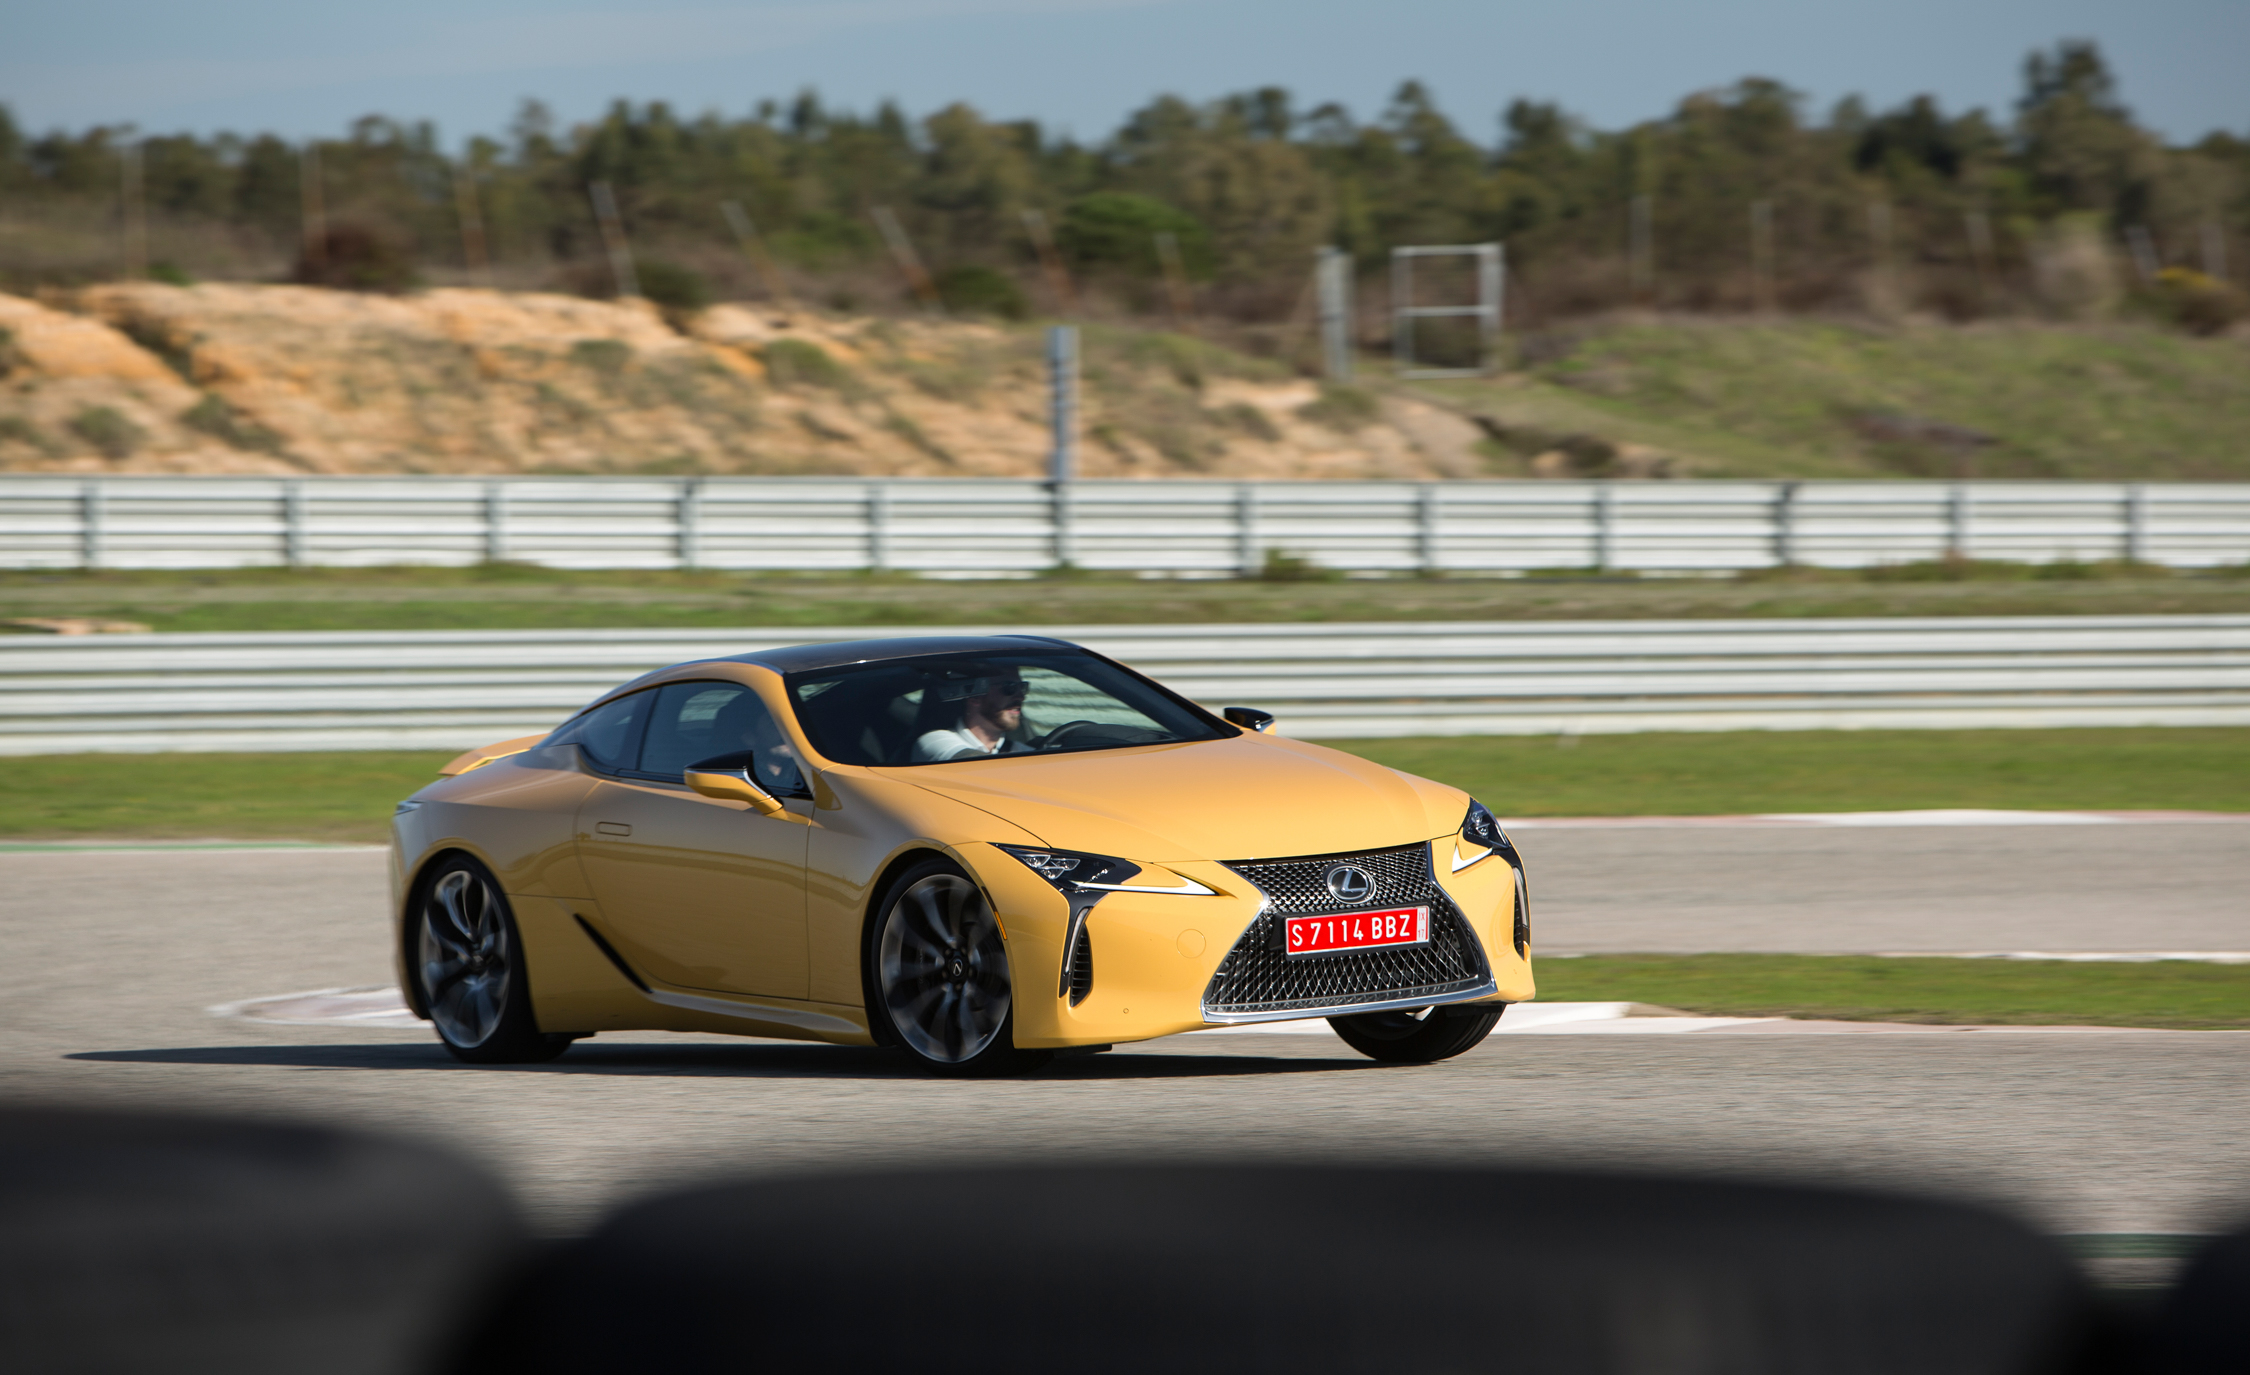 2018 Lexus Lc 500 Yellow Test Drive Performance (View 17 of 84)